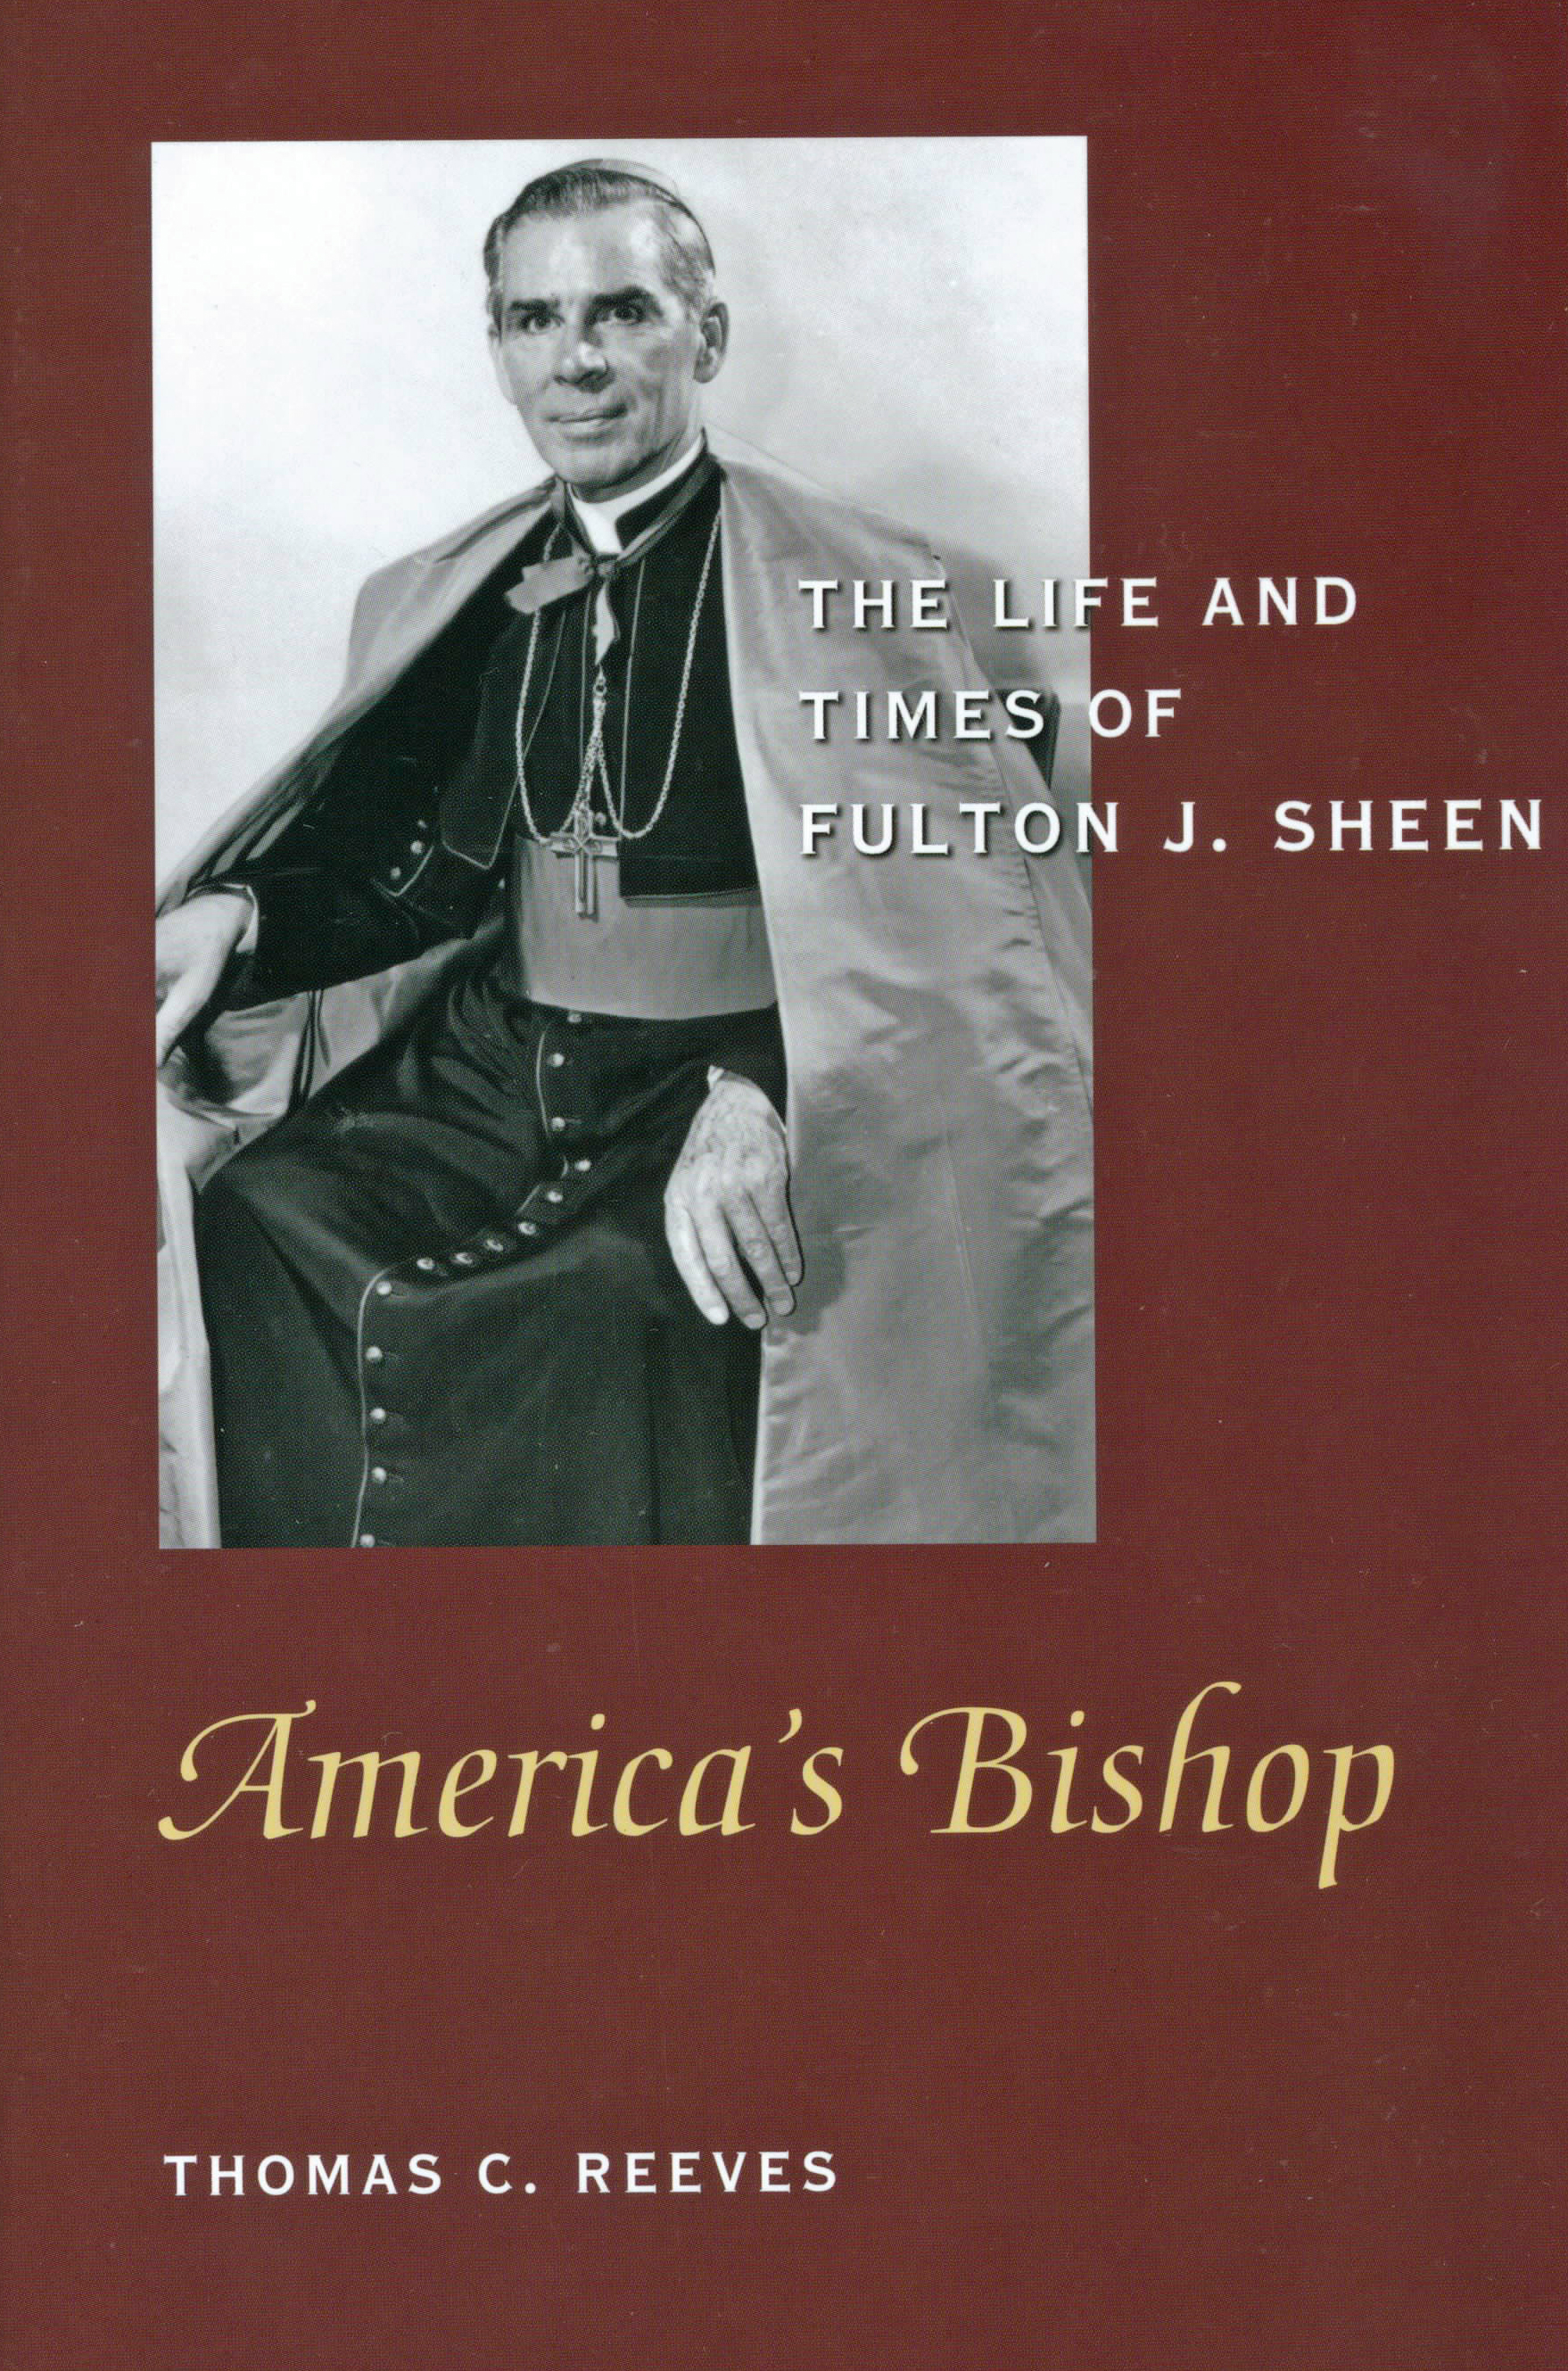 America's Bishop: The Life and Times of Fulton J. Sheen by Thomas C. Reeves 108-9781893554610